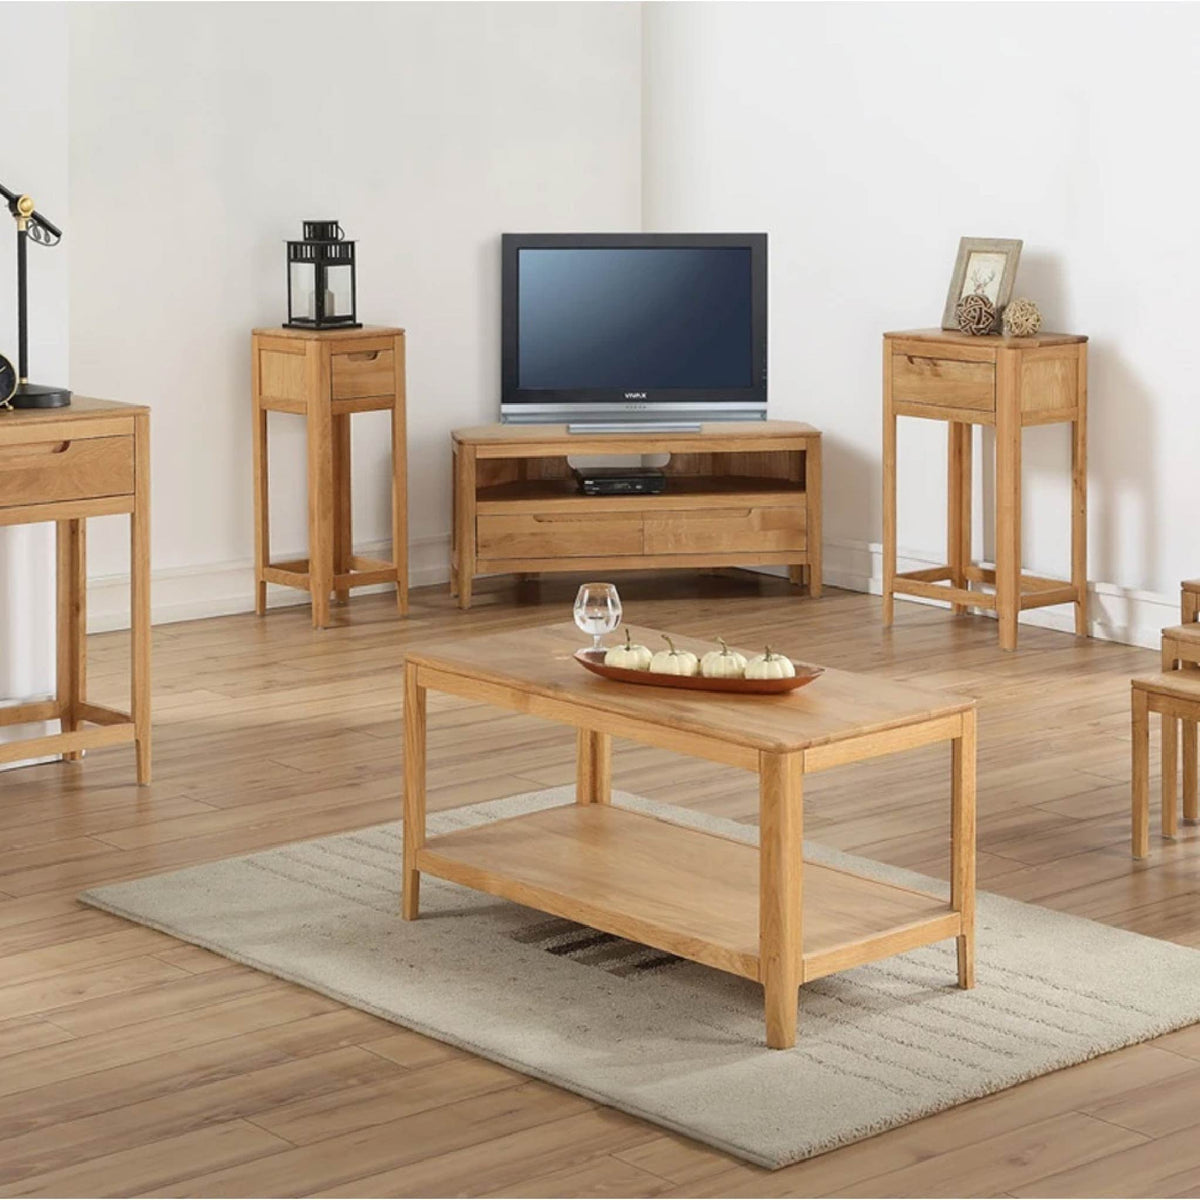 Dunmore Oak Coffee Table  range view